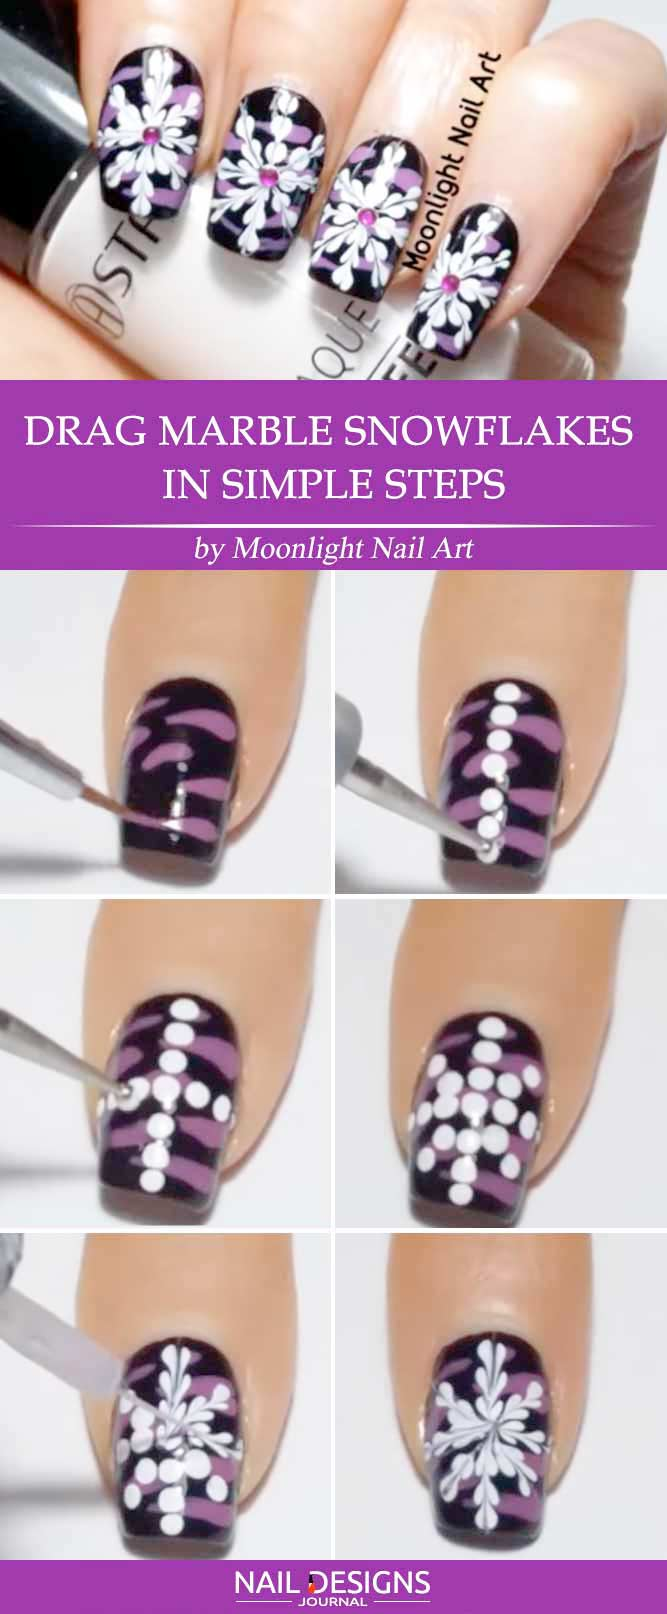 7 easy tutorials on snowflake nails art naildesignsjournal drag marble snowflakes in simple steps prinsesfo Image collections